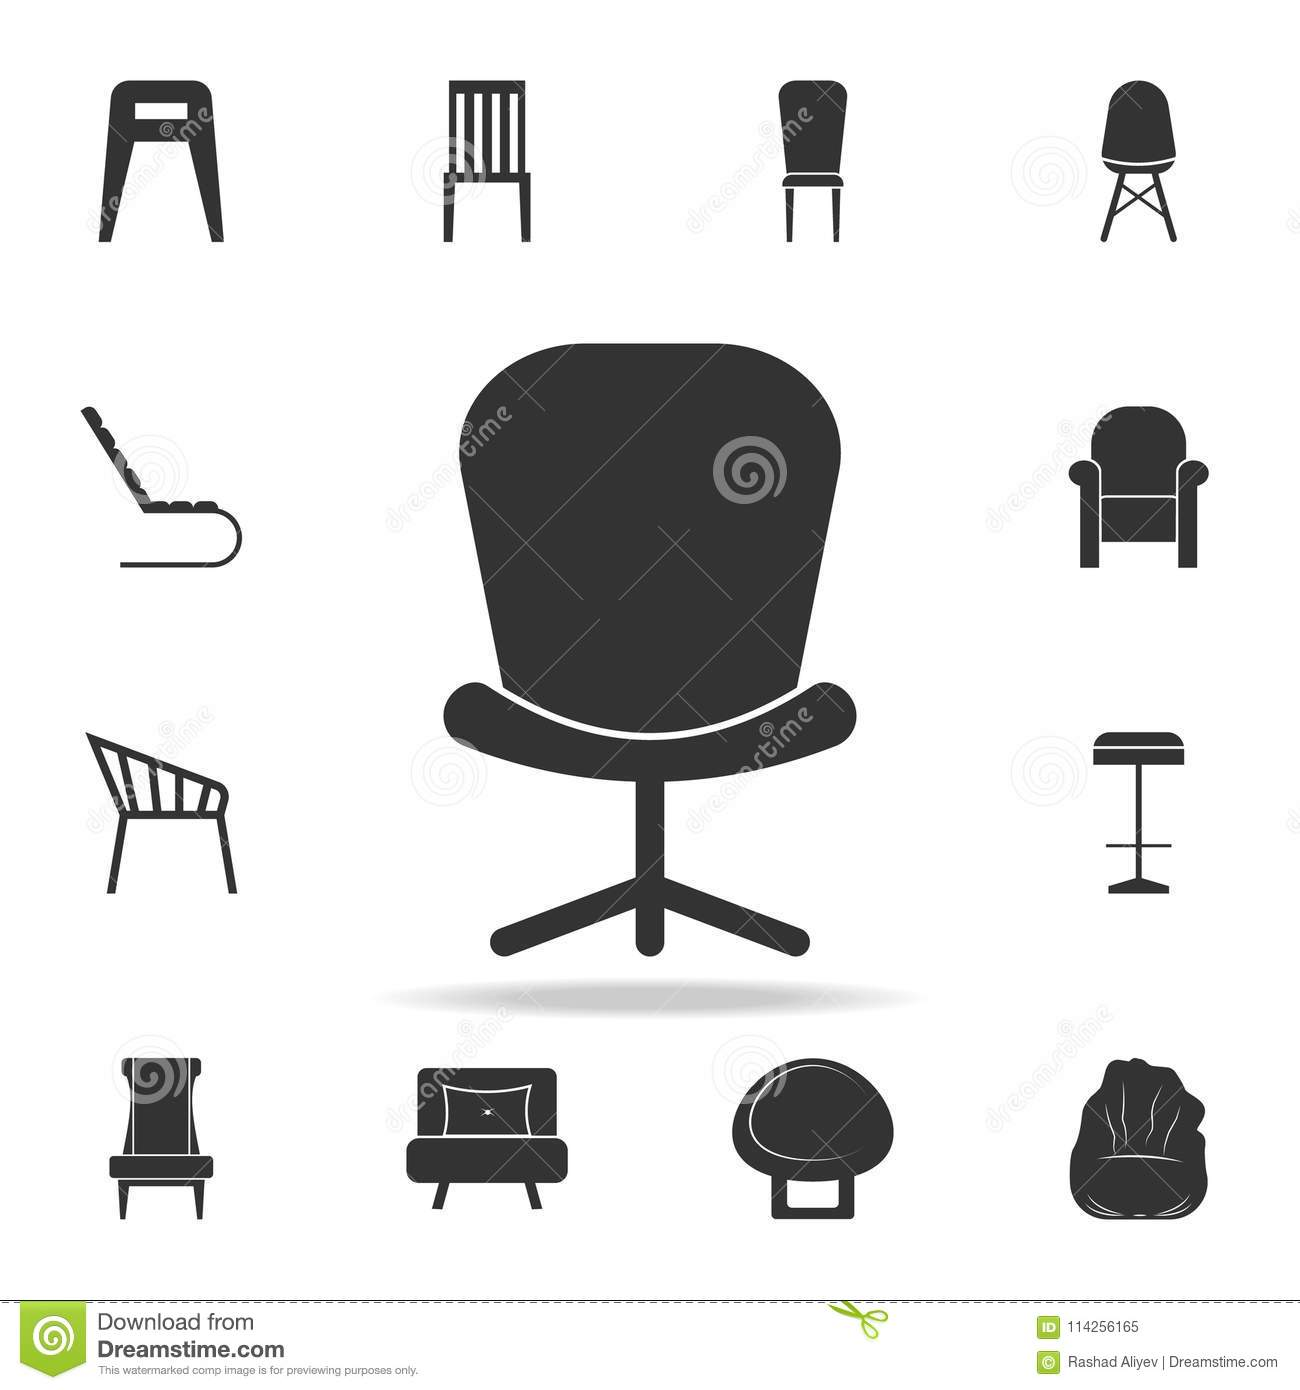 chair design icons desk pink office icon detailed set of furniture premium quality graphic one the collection for websites web mobile app on white